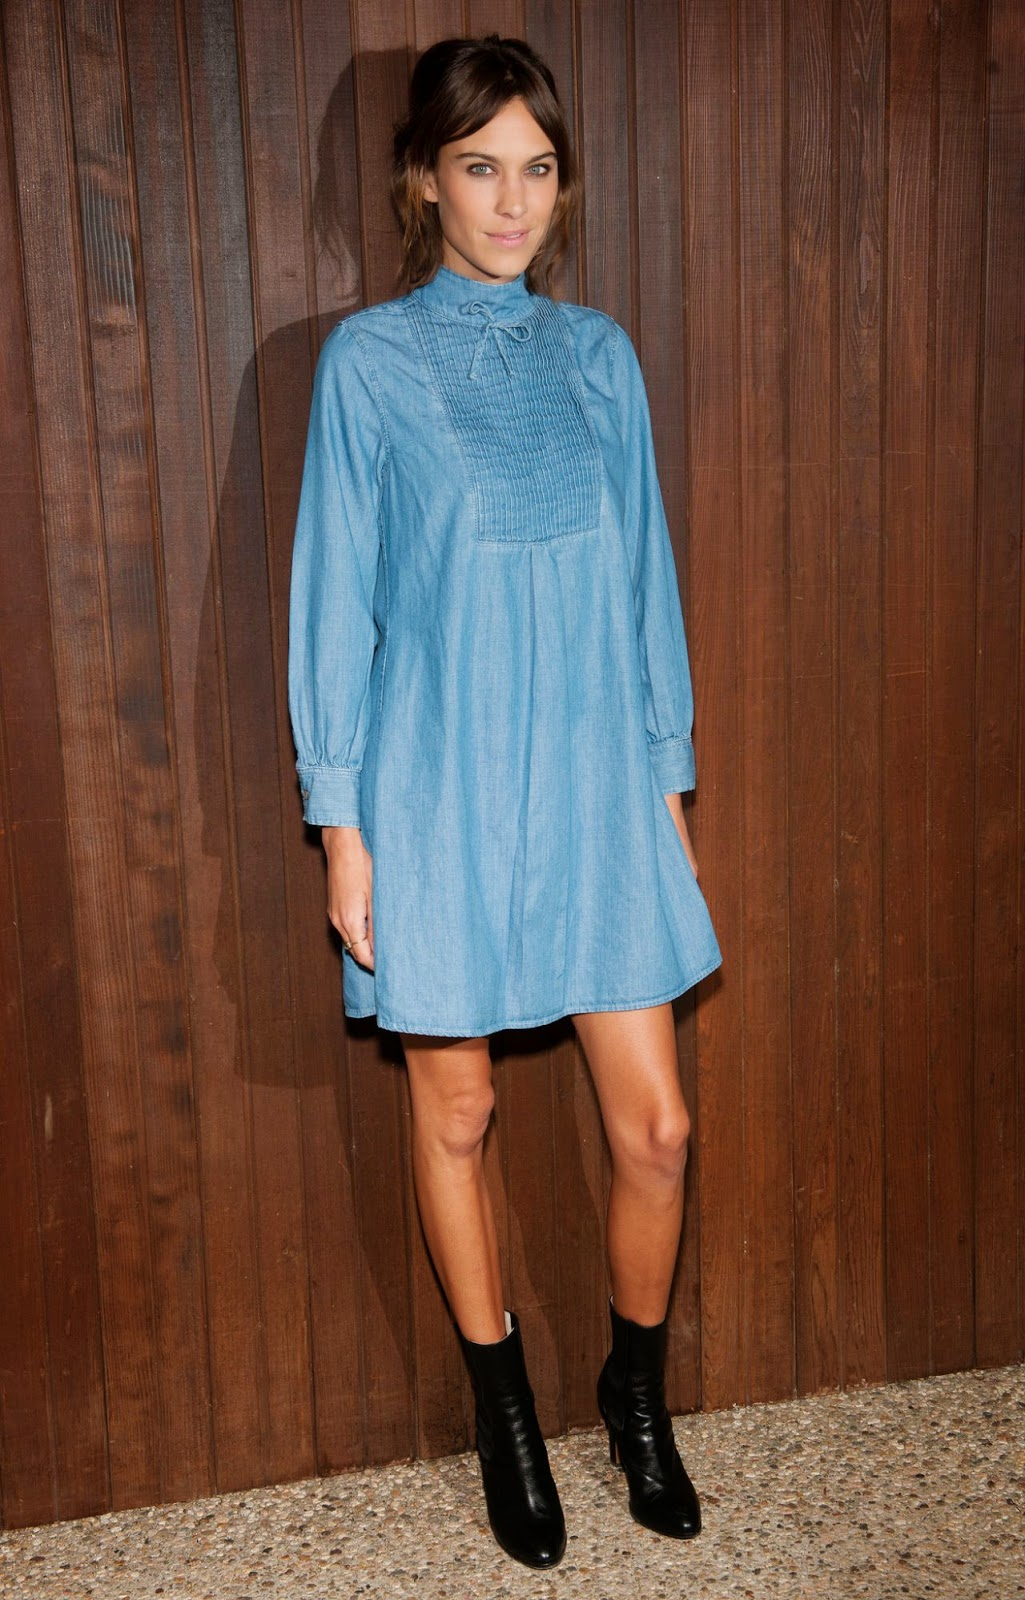 Alexa Chung in a denim baby doll dress at the Alexa Chung for AG launch party in Beverly Hills